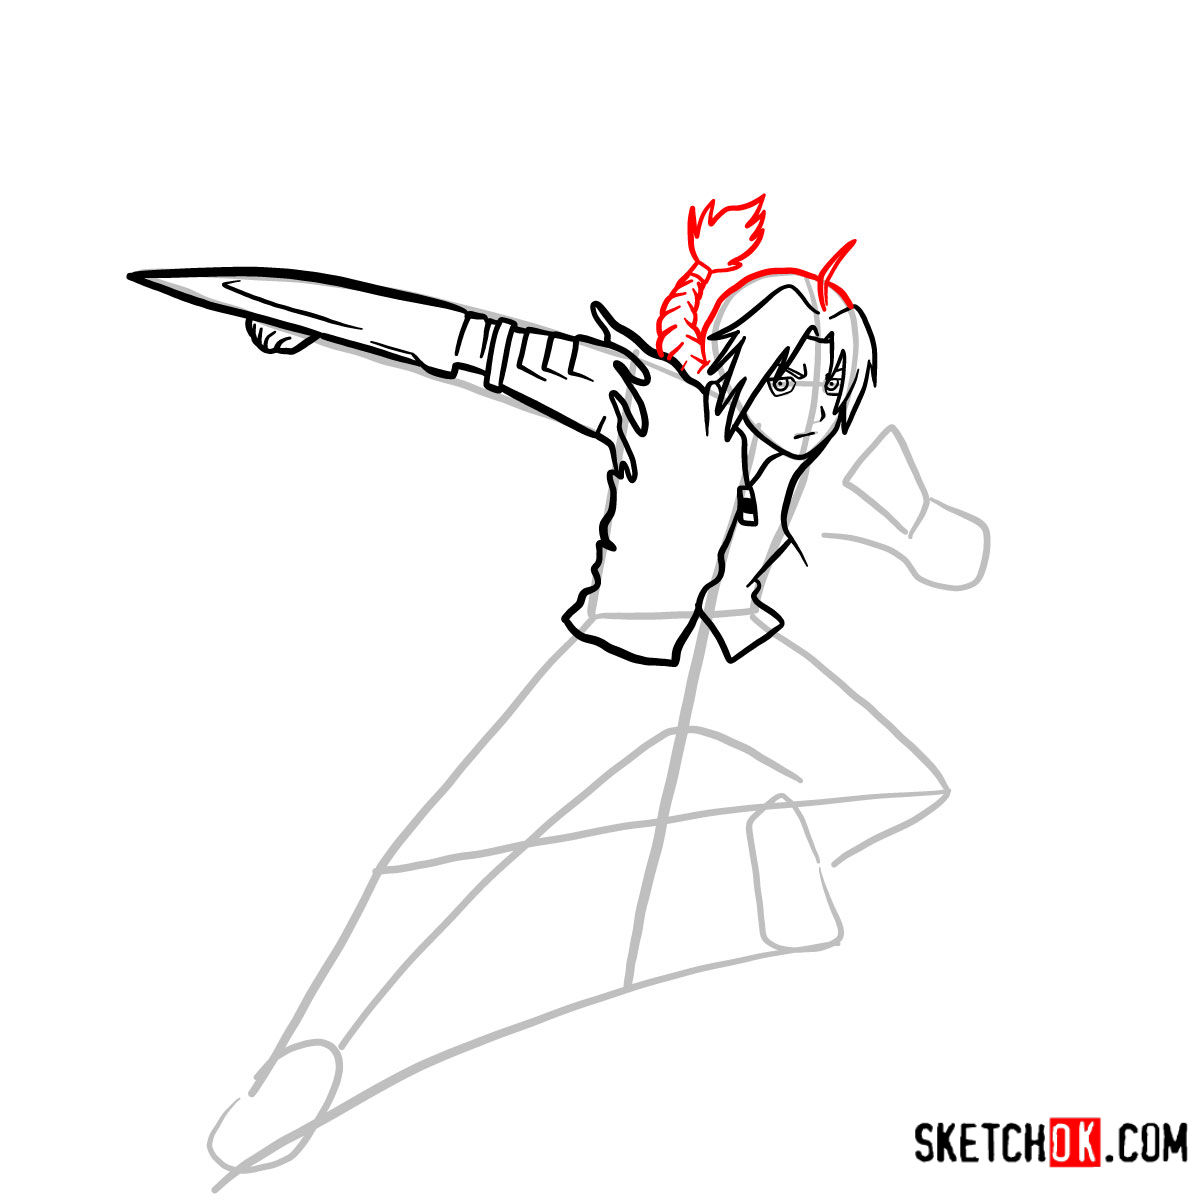 How to draw Edward Elric in a fight | Fullmetal Alchemist - step 08